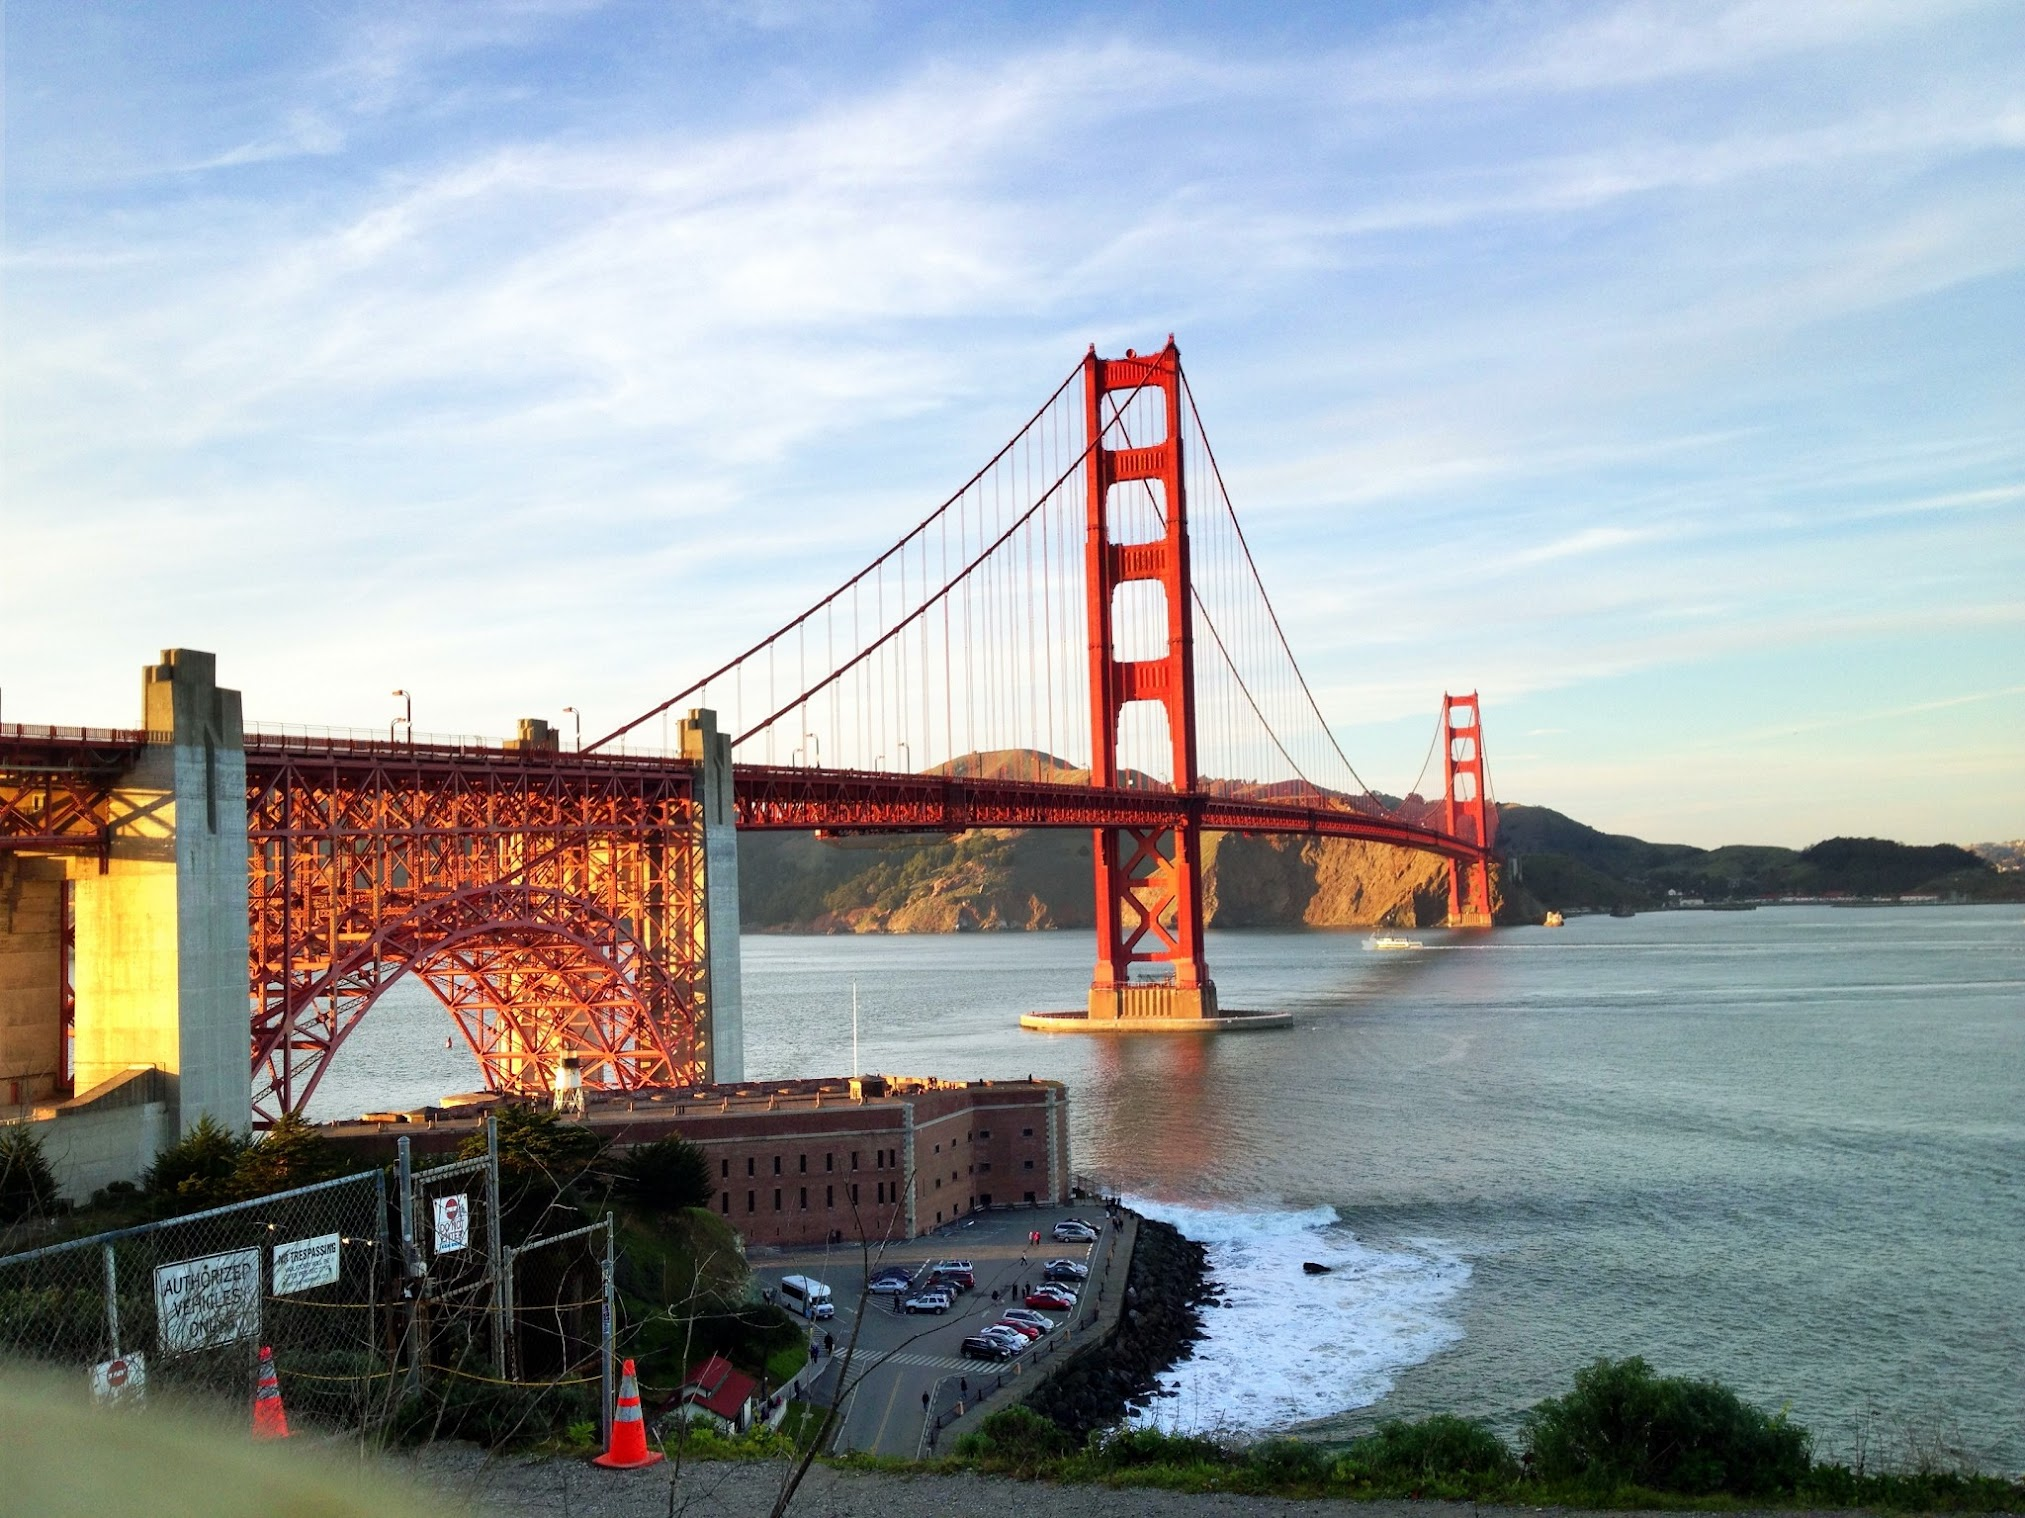 Golden Gate Bridge from the Marin headland viewpoint